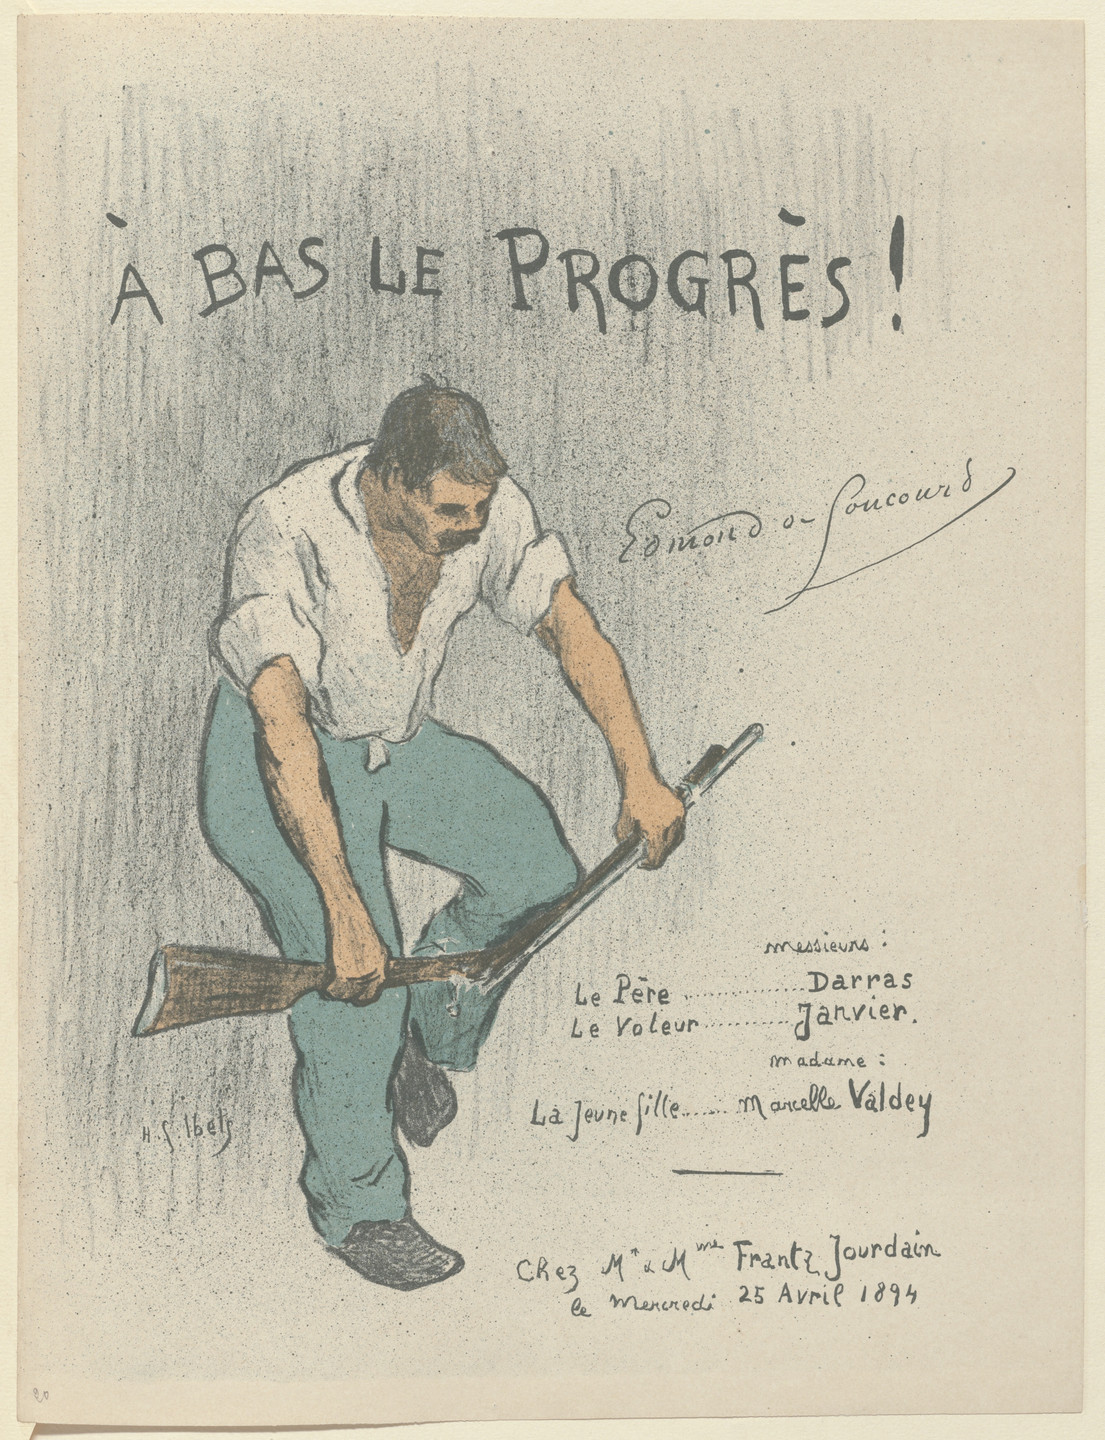 Henri-Gabriel Ibels. Program for Down with Progress! (A bas le progrès!) from The Beraldi Album of Theatre Programs. 1894